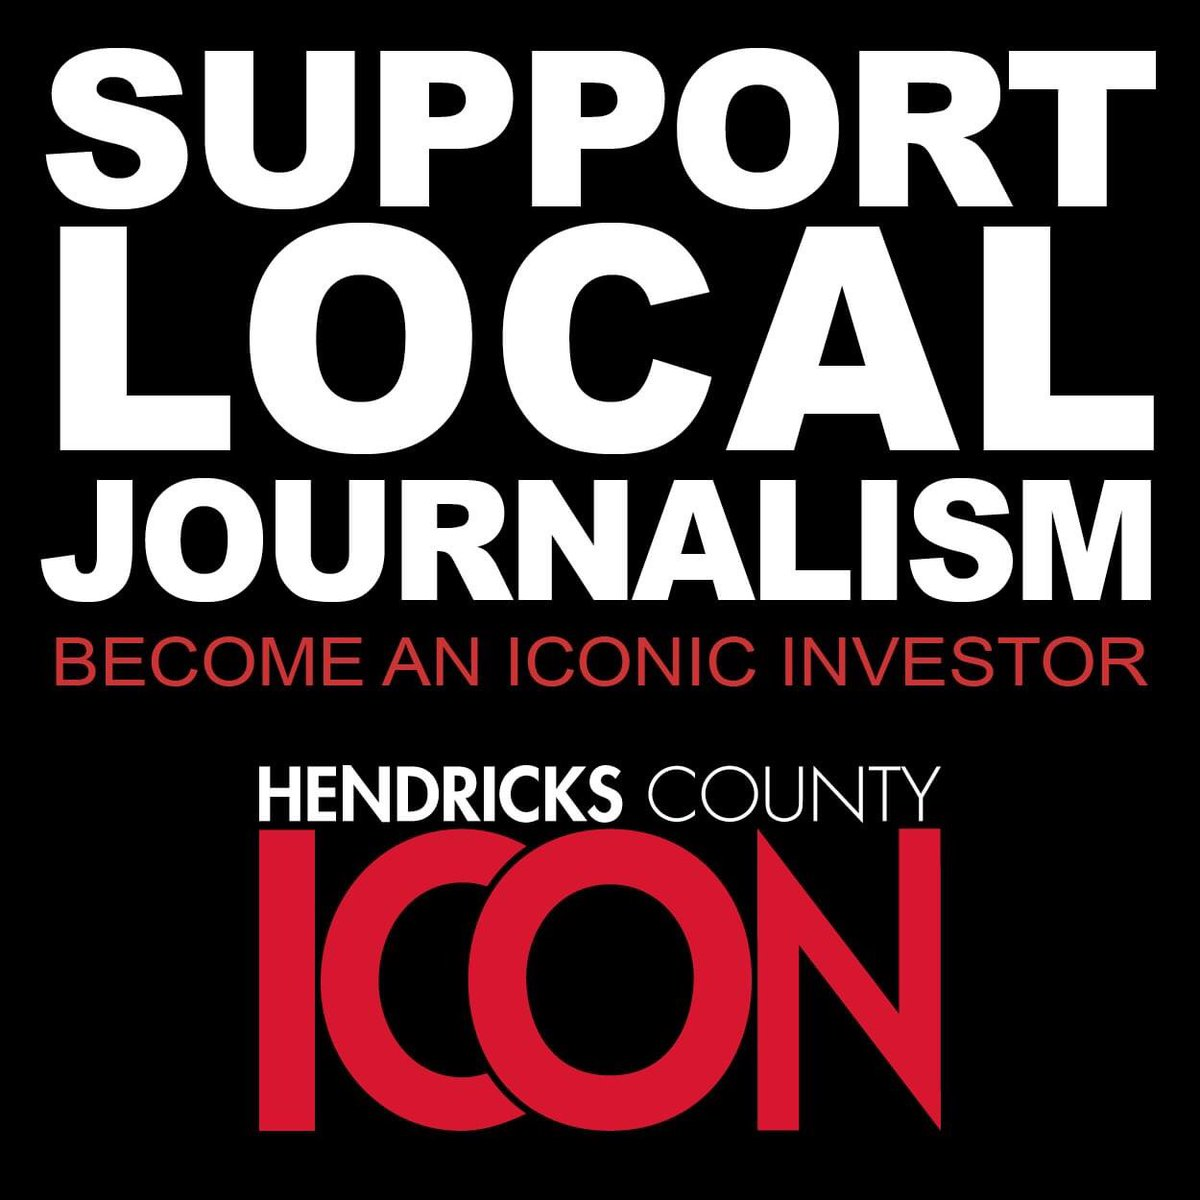 Support @myHCICON  mission of providing the community with its unique brand of independent, hyper-local news and information by making a voluntary-pay donation today. Click: https://t.co/hLMfiO6ORn #SupportLocalJournalism #ALLinHendricksCounty https://t.co/0Qq2sD5pxp